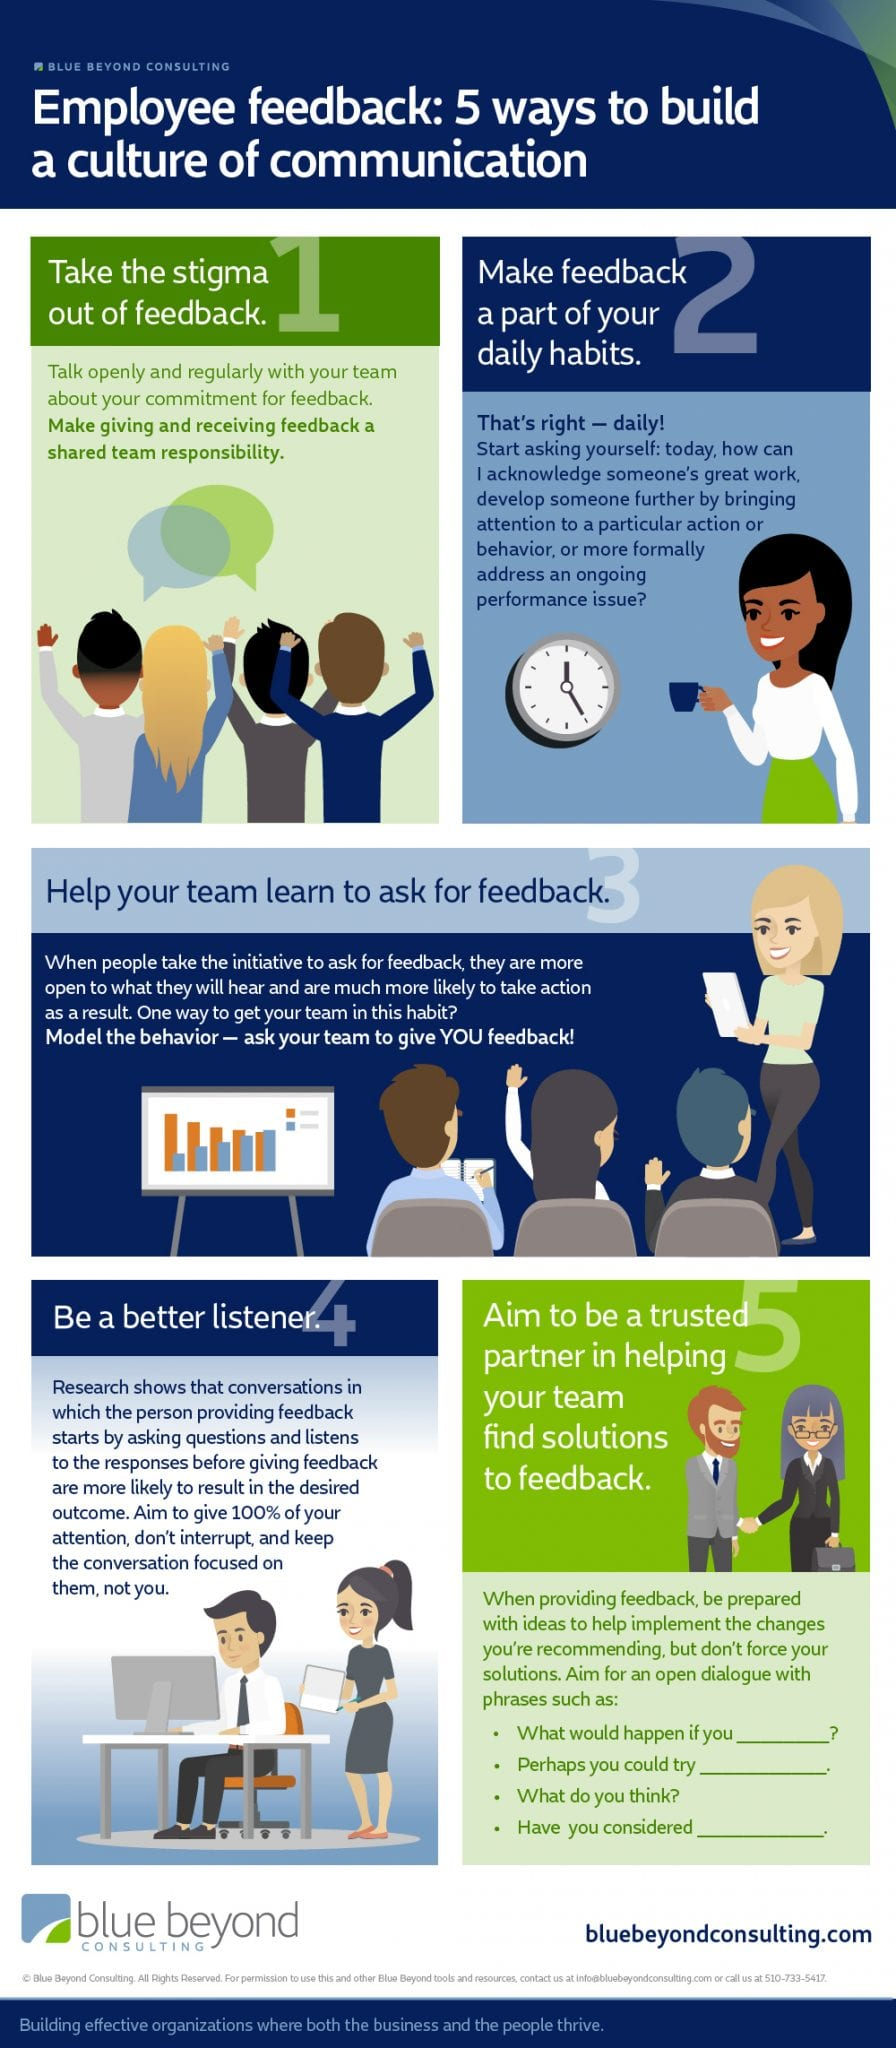 employee feedback culture of communication infographic